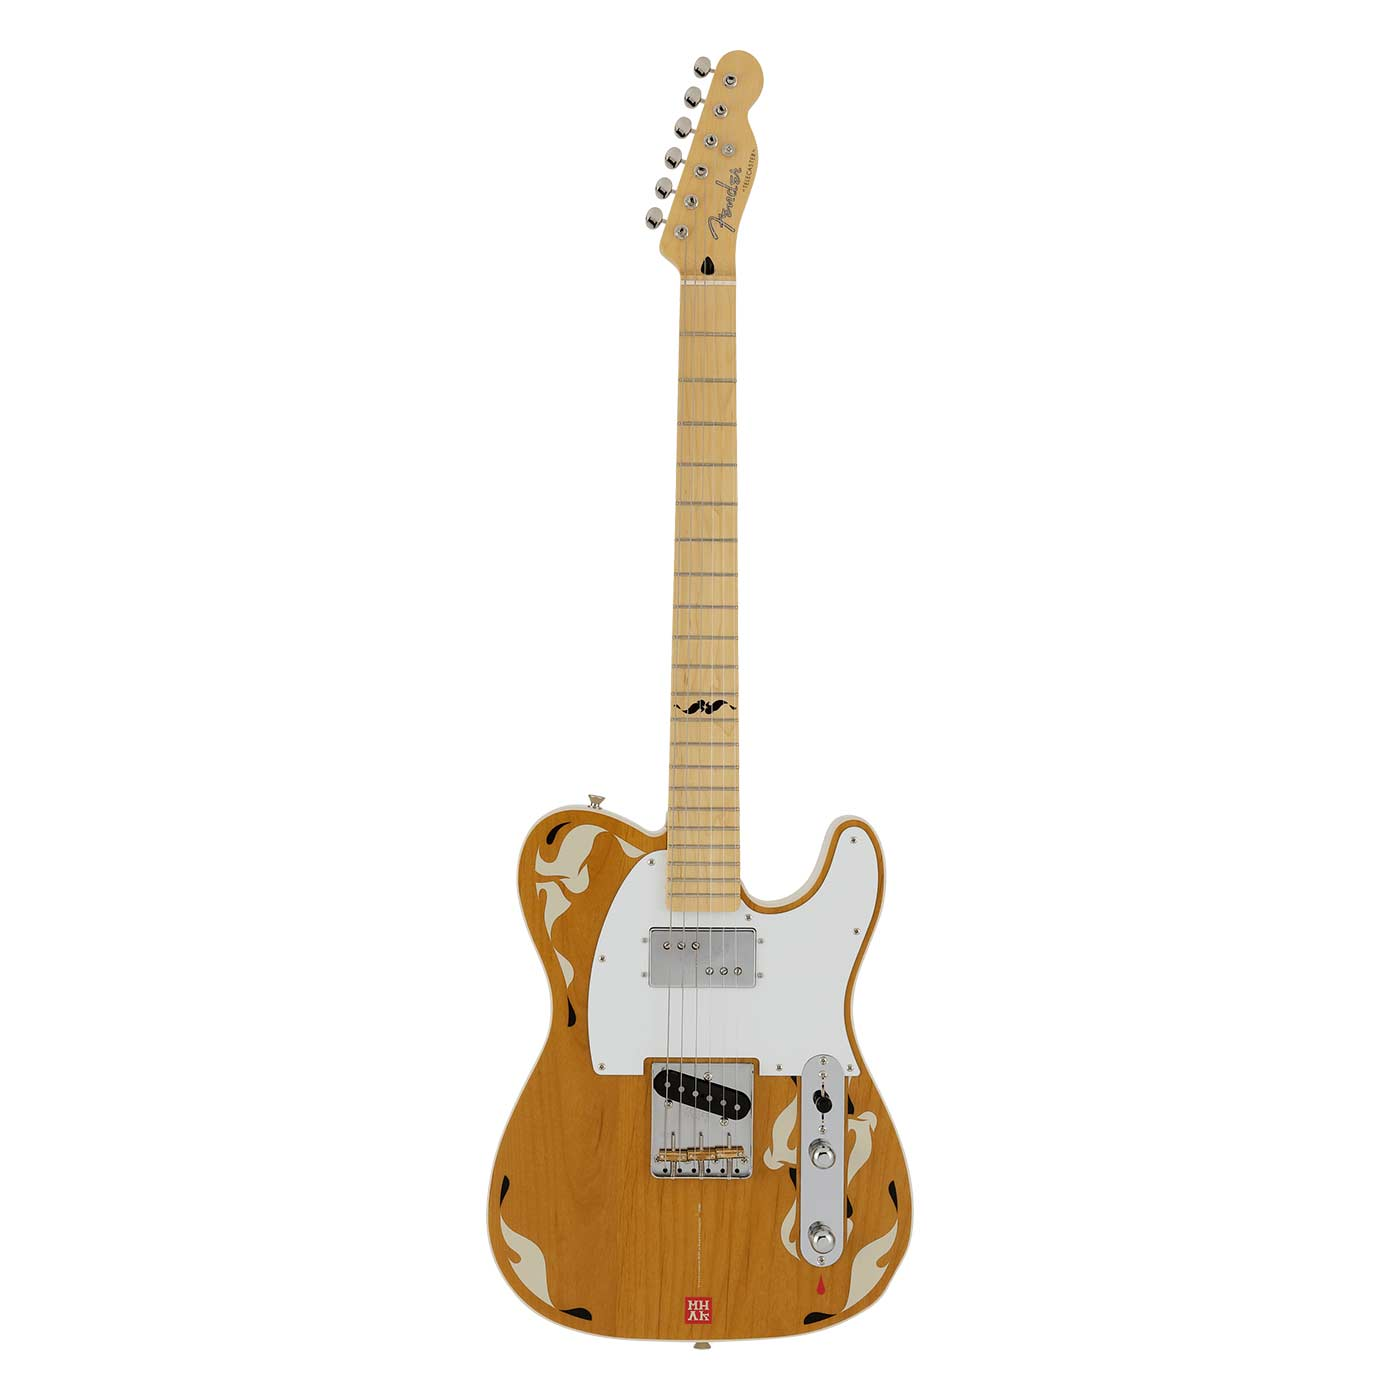 Guitarra eléctrica Fender MIJ Art Gallery Collection Telecaster MHAK Limited